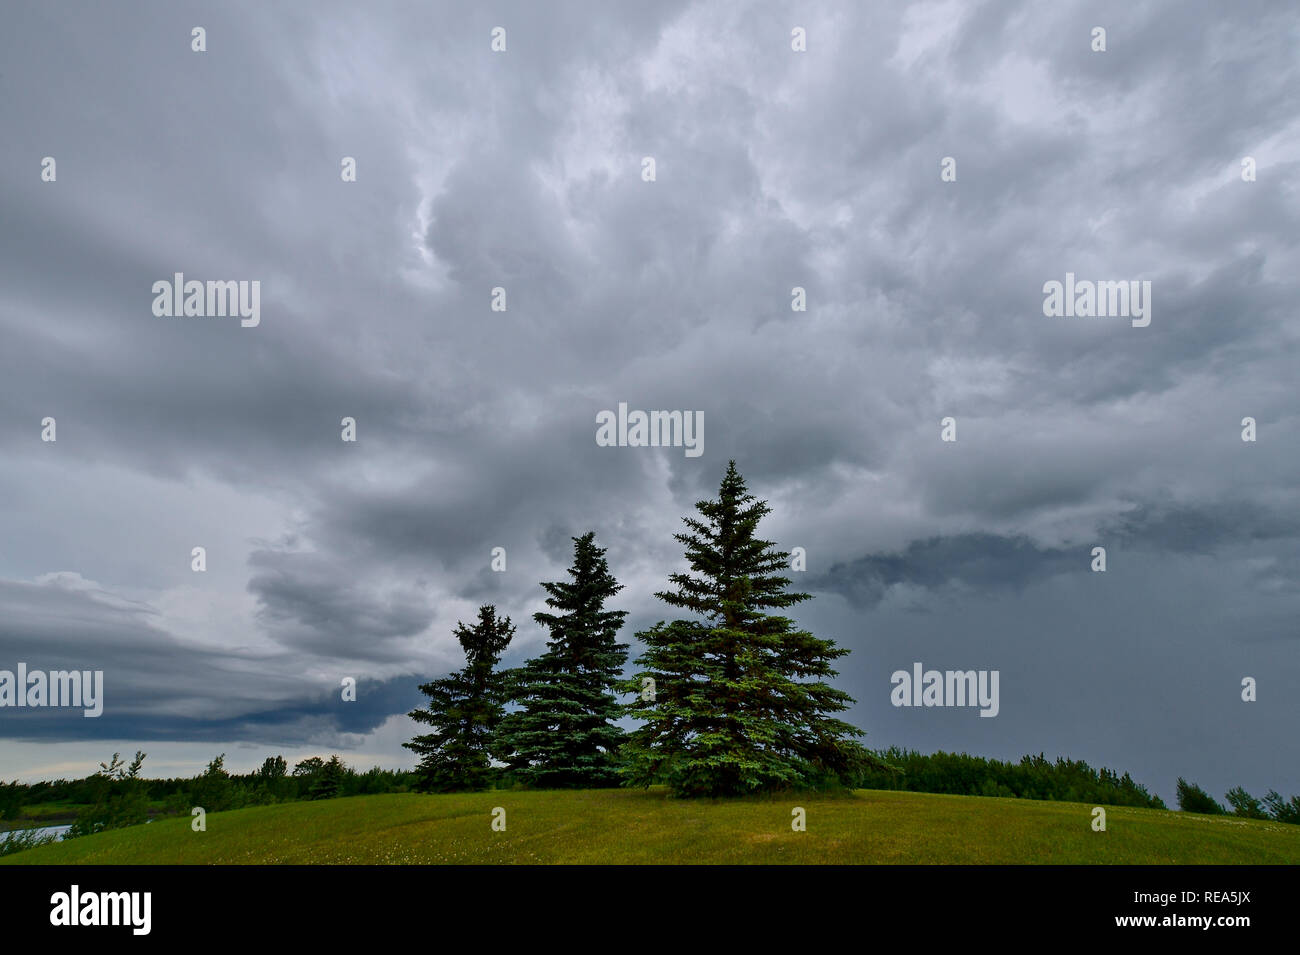 A wide angle landscape image of storm clouds moving over a natural pond and green space in rural Alberta Canada. - Stock Image